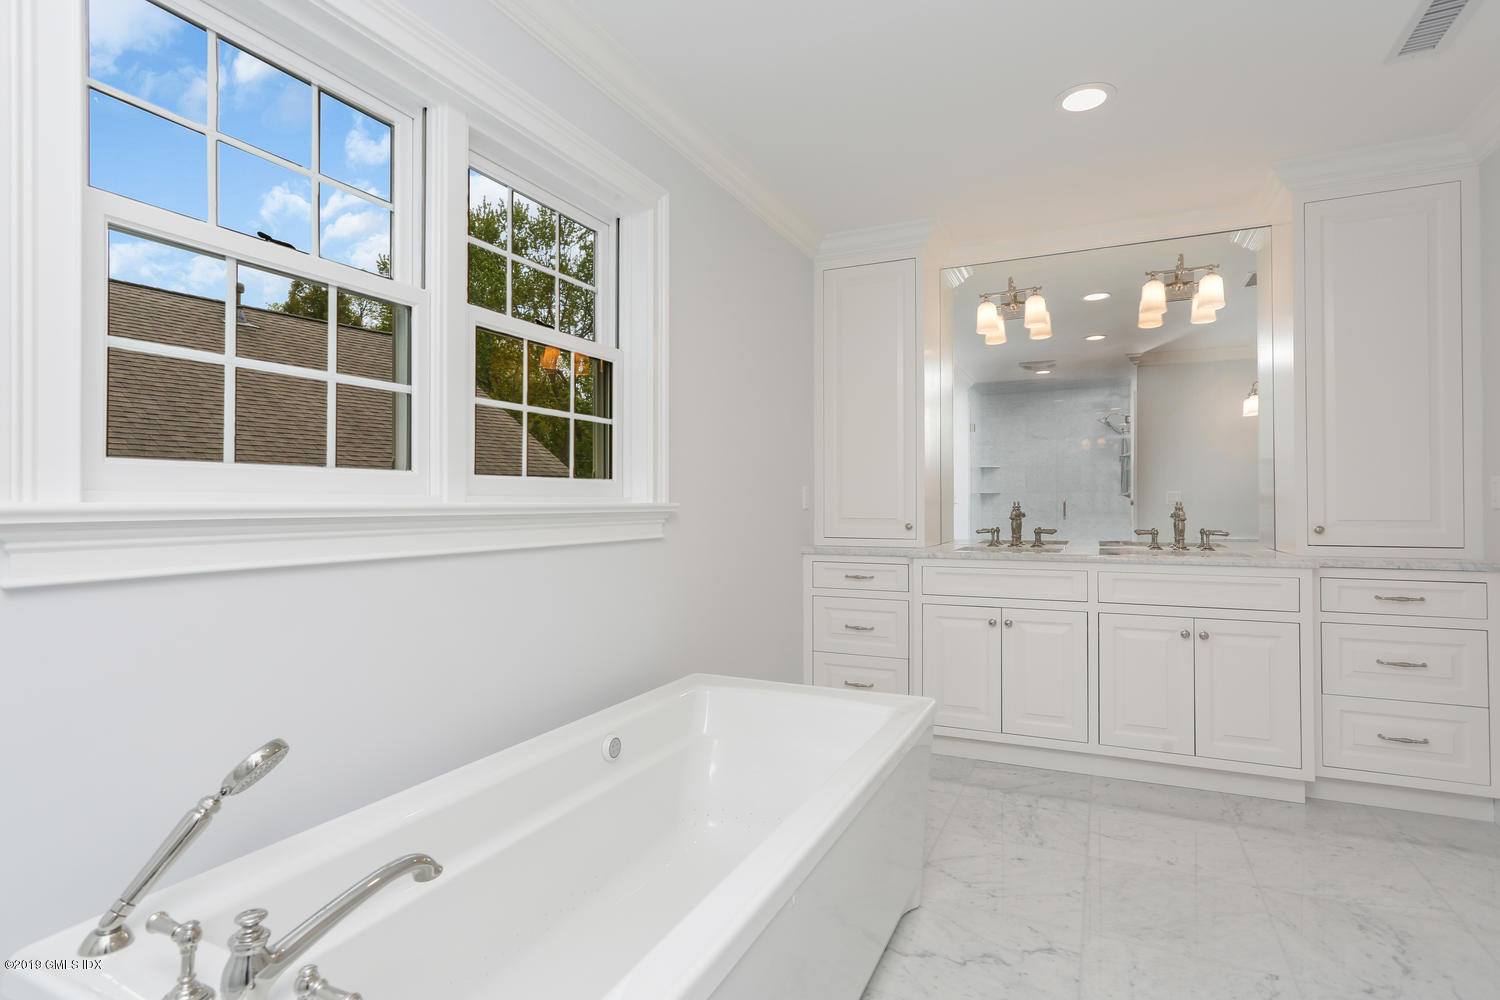 39 North Ridge Road,Old Greenwich,Connecticut 06870,4 Bedrooms Bedrooms,5 BathroomsBathrooms,Single family,North Ridge,106615